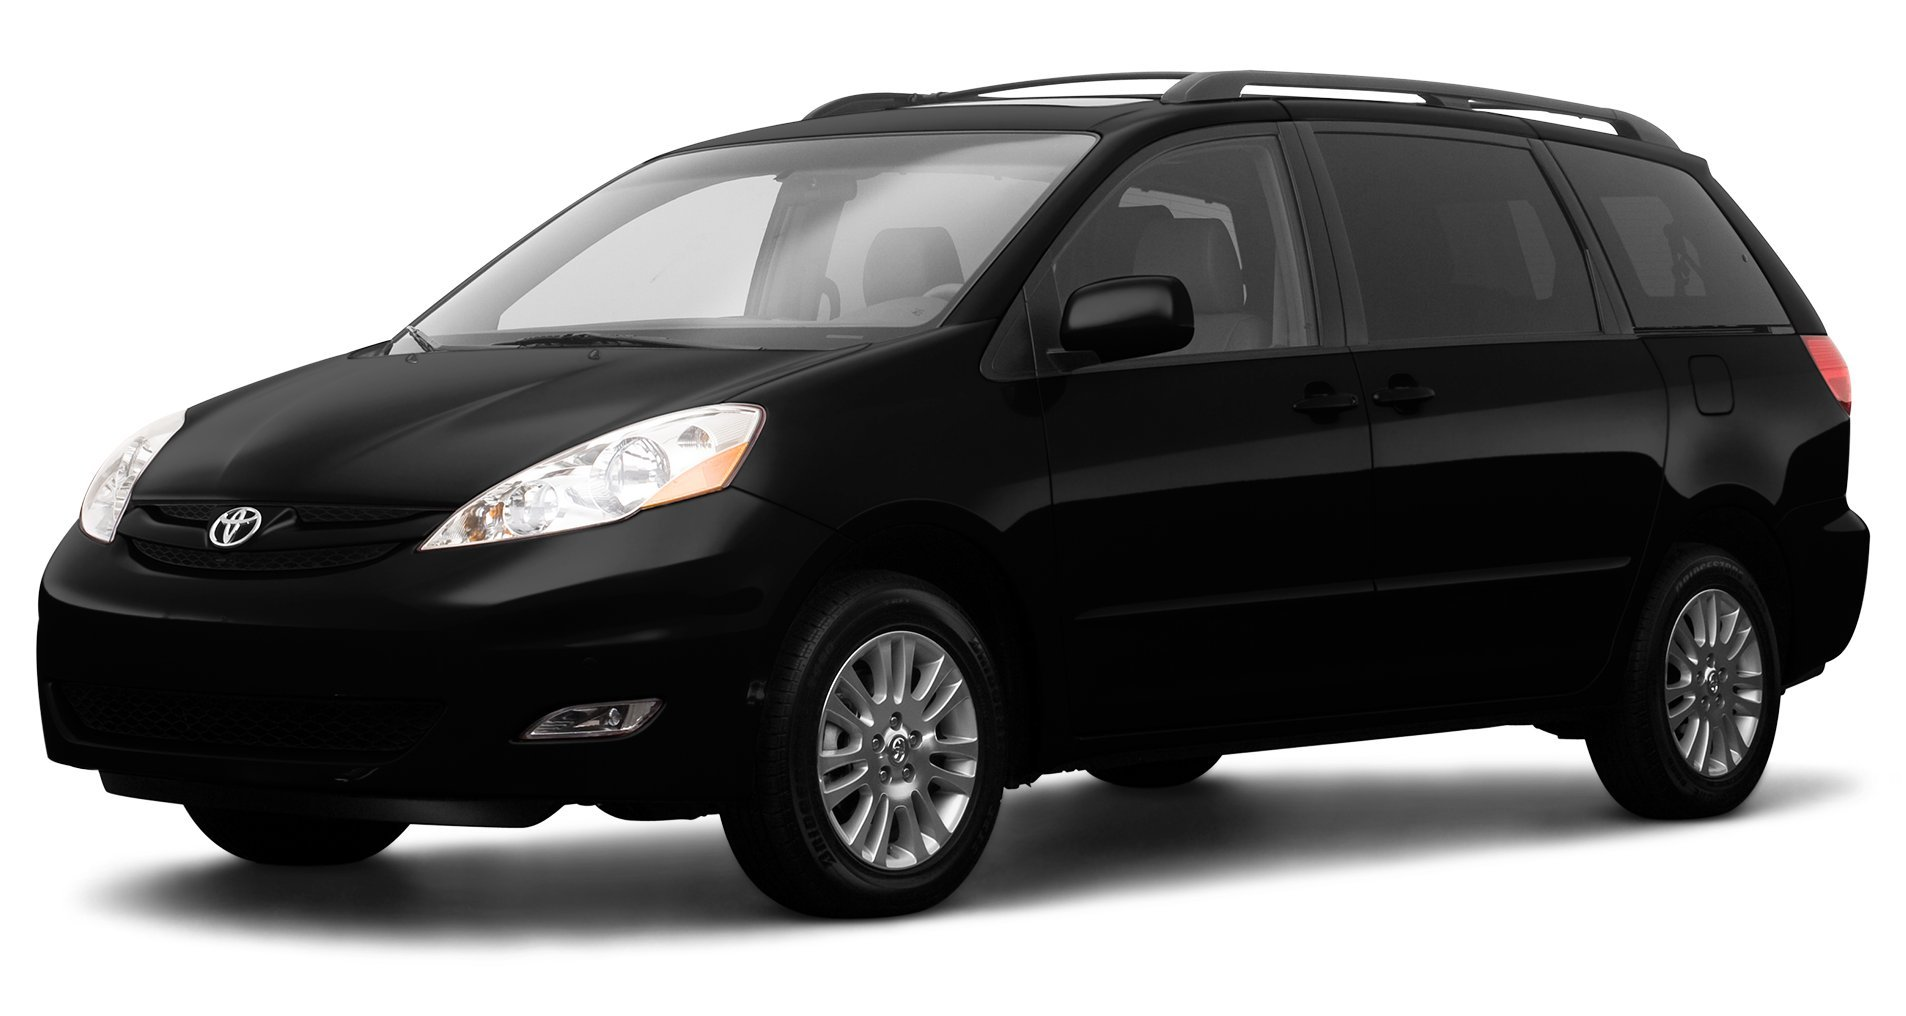 2009 honda odyssey reviews images and specs. Black Bedroom Furniture Sets. Home Design Ideas